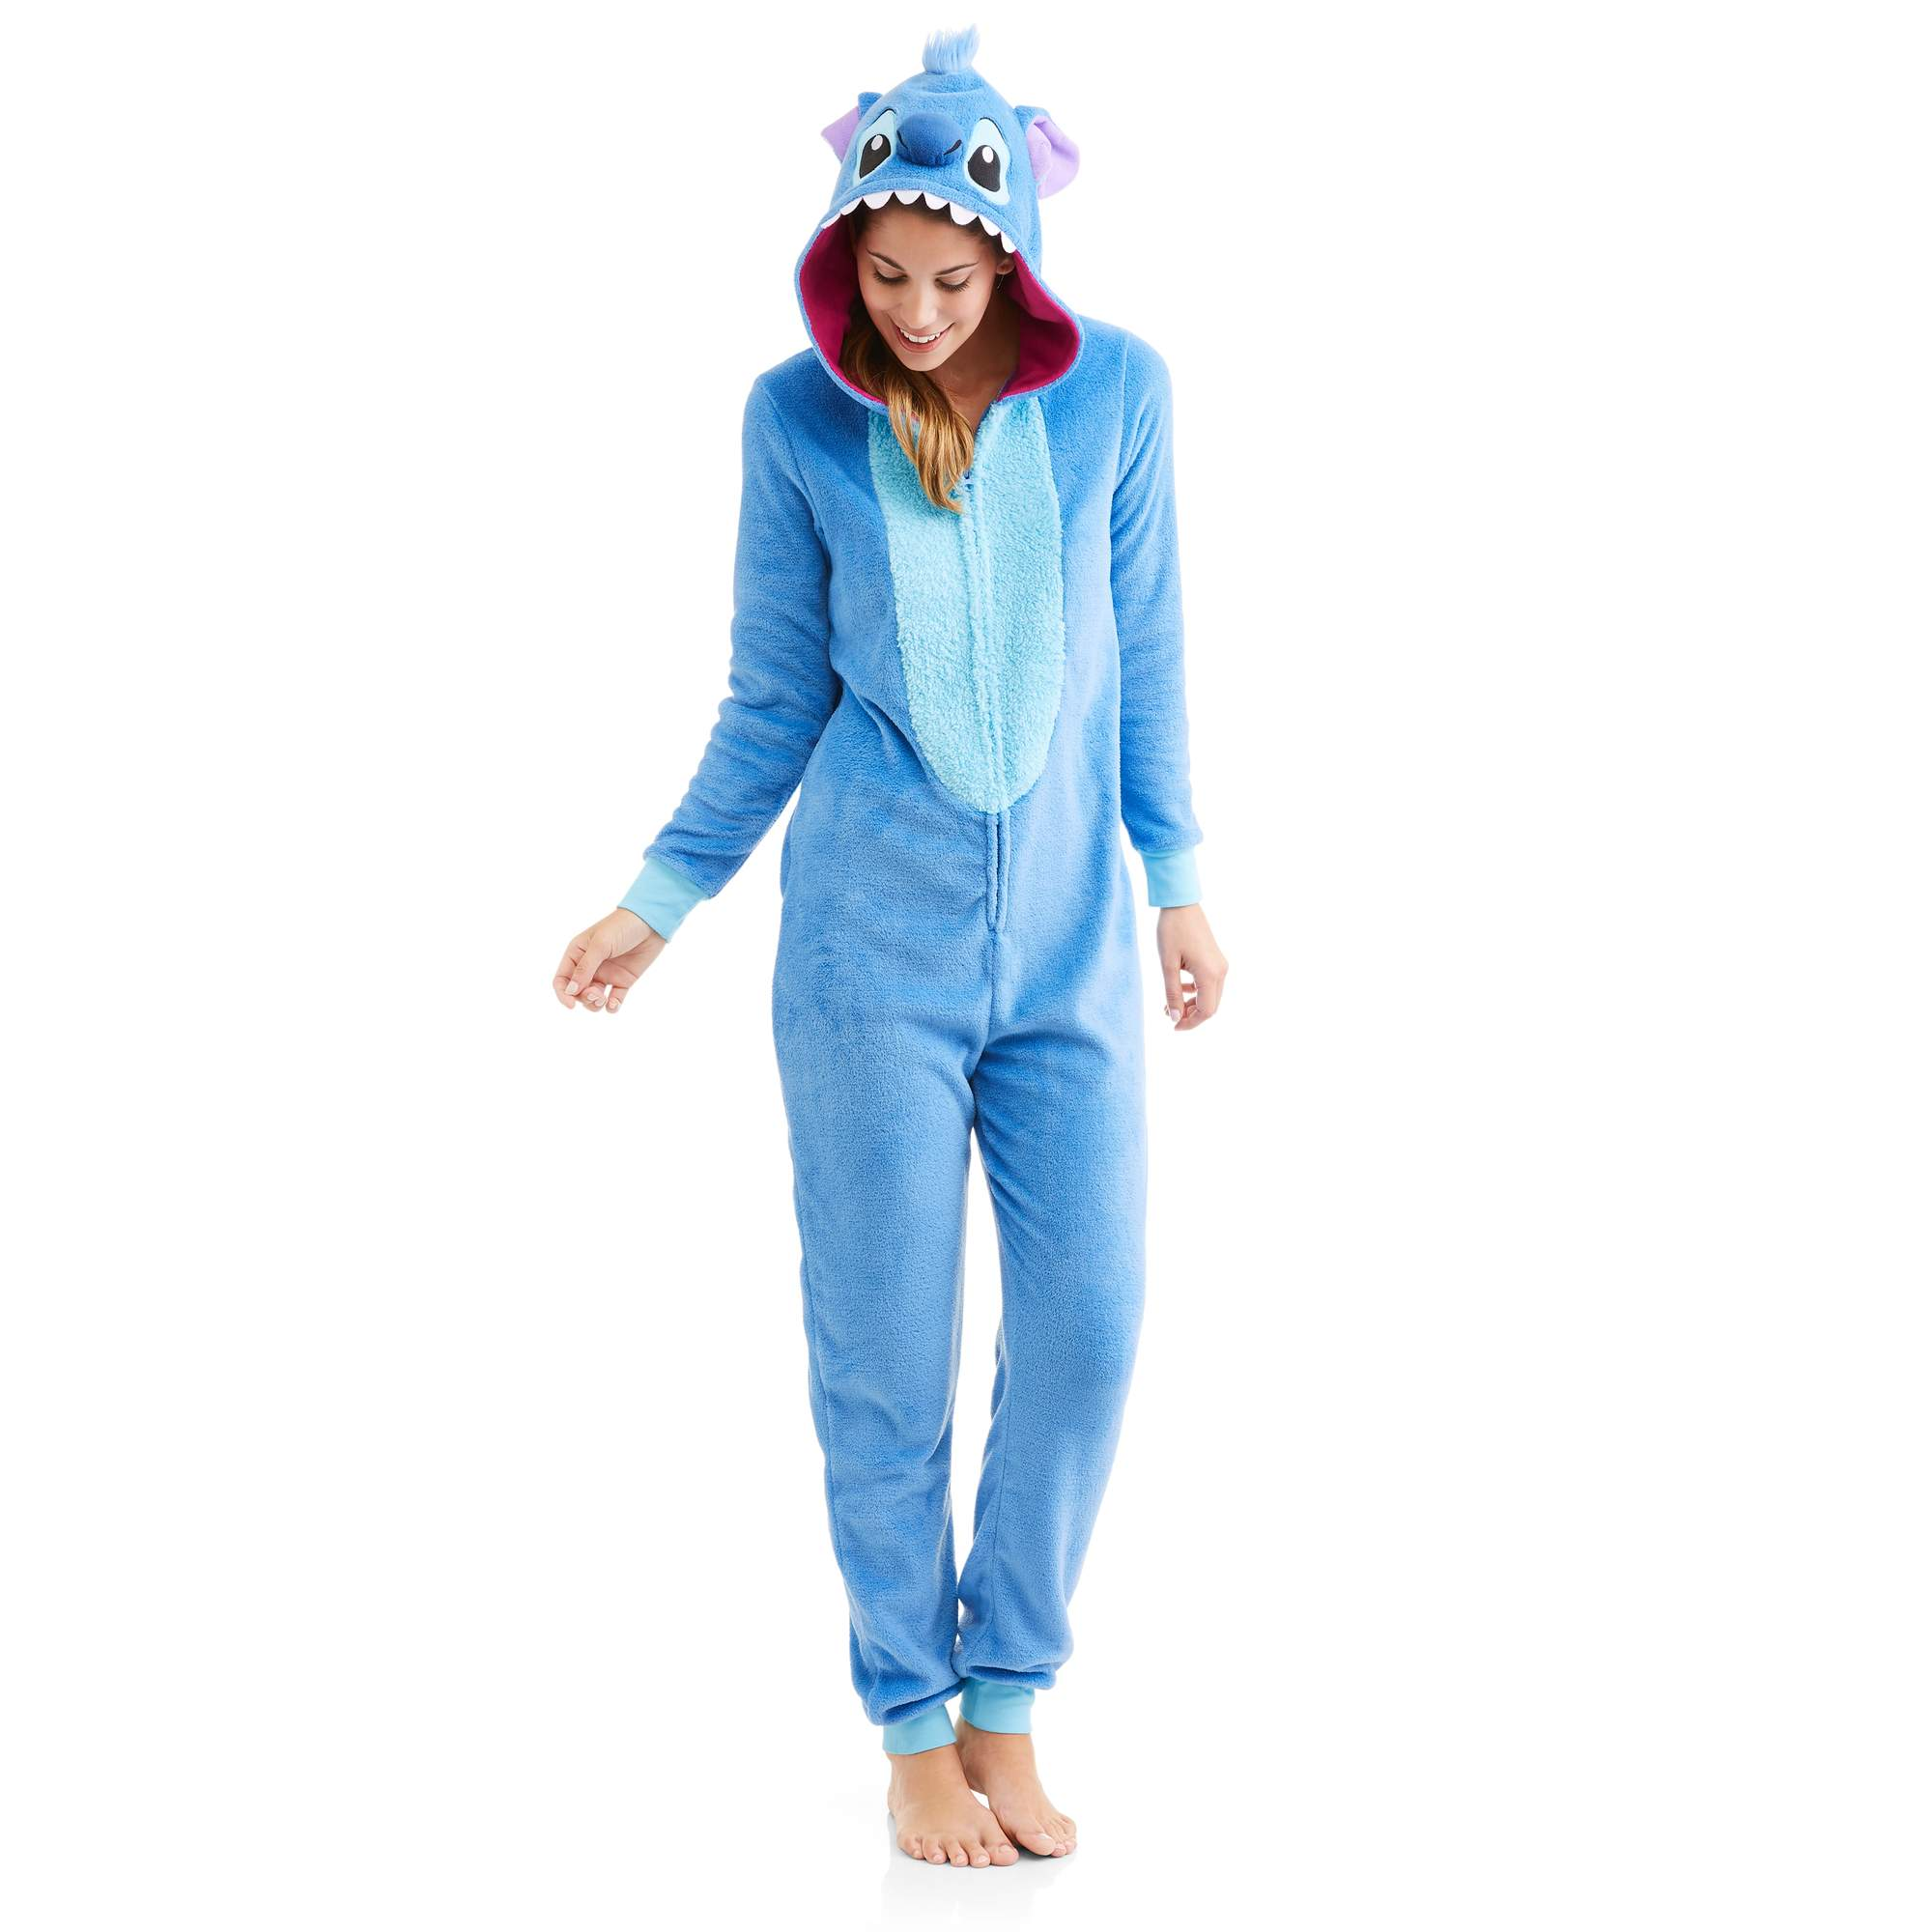 Stitch - Disney s Women s and Women s Plus Licensed Sleepwear Adult One  Piece Costume Union Suit Pajama (XS-3X) - Walmart.com d76f74fb5